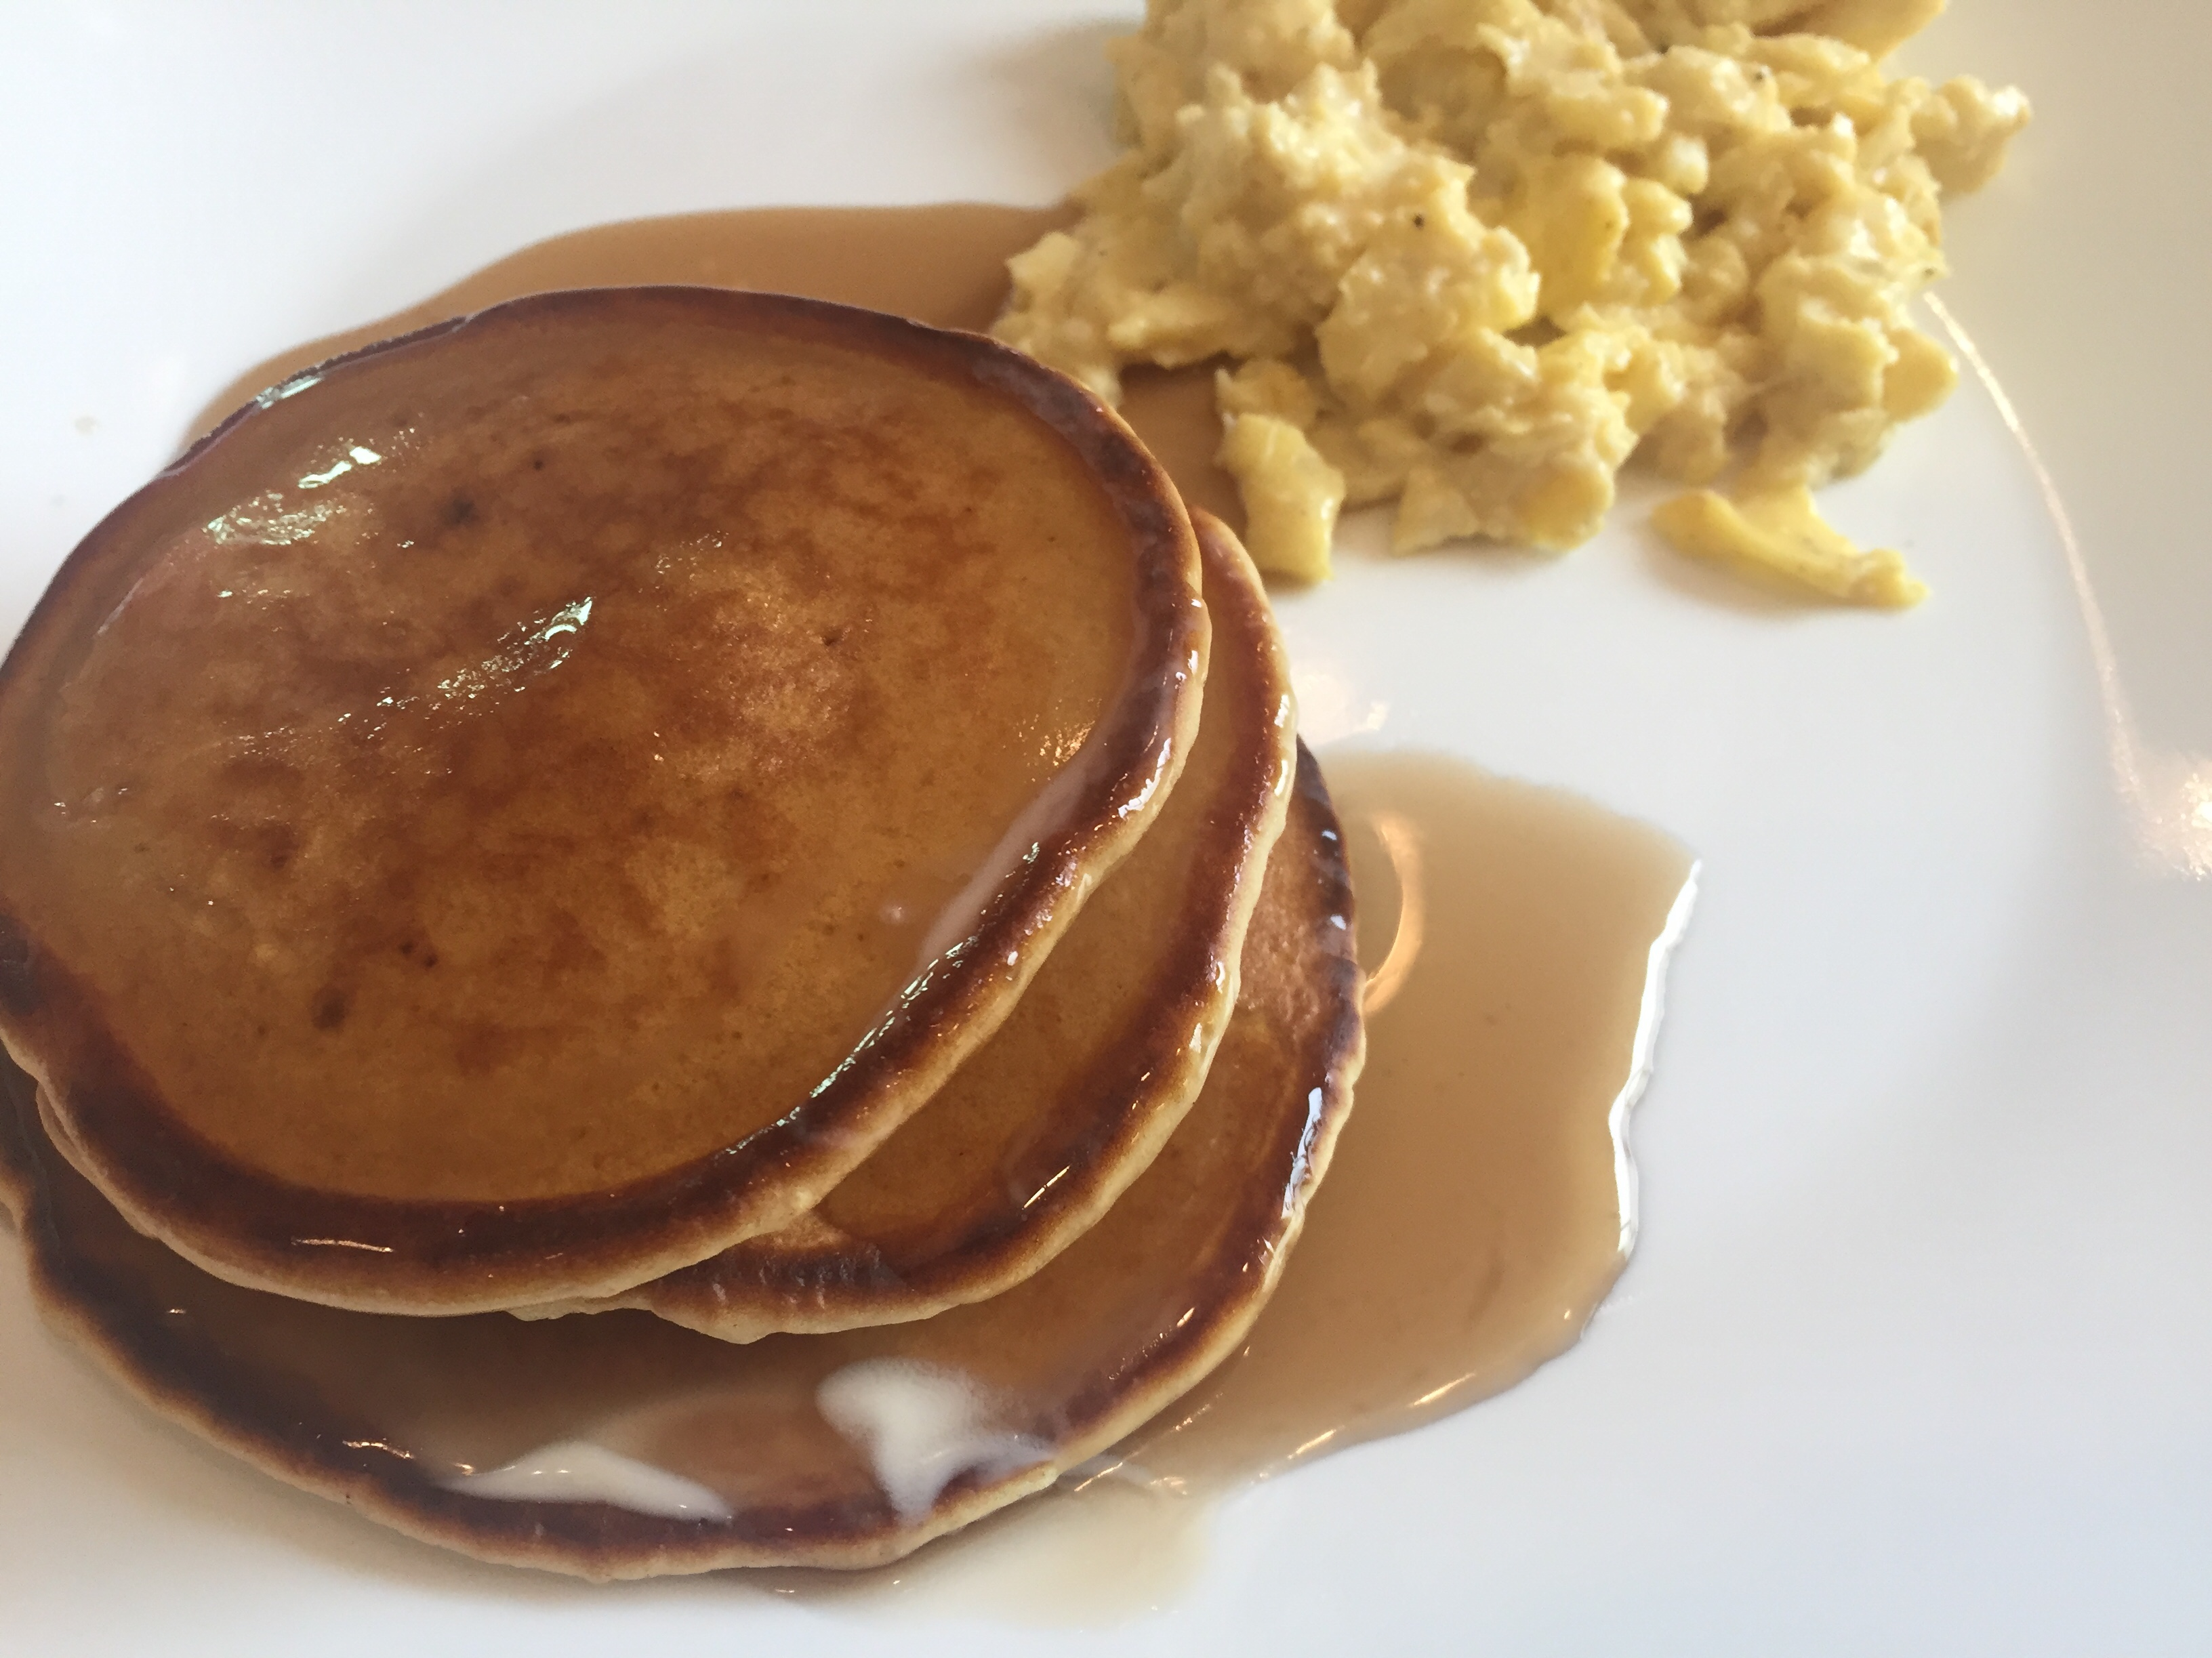 Pancakes with no baking powder recipe genius kitchen not that long ago by me as an app on my kids new tv and im so happy i stumbled on it lots of great recipeske these easy peesy pancakes yum ccuart Images